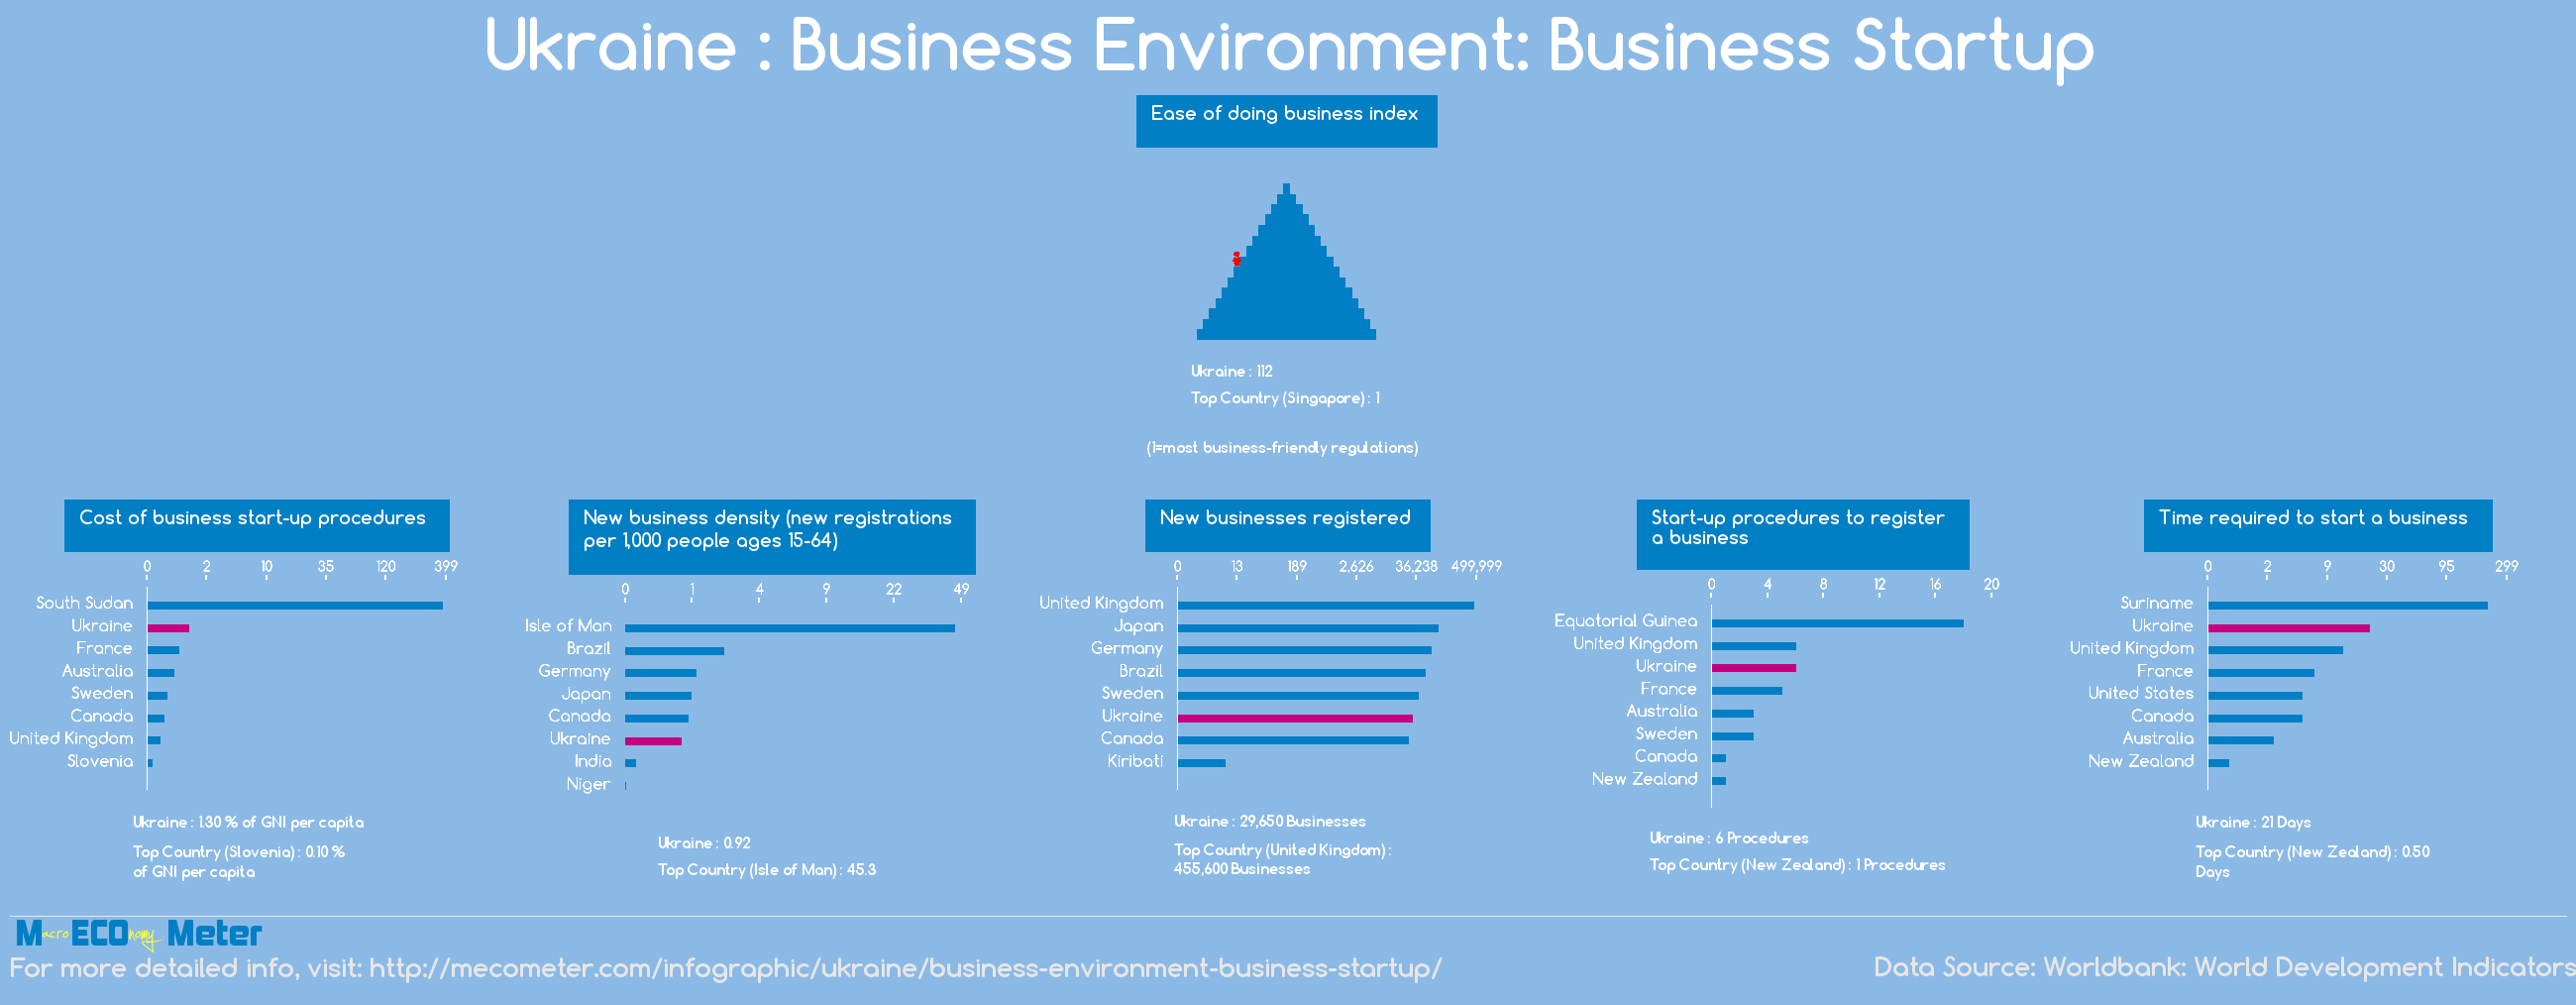 Ukraine : Business Environment: Business Startup